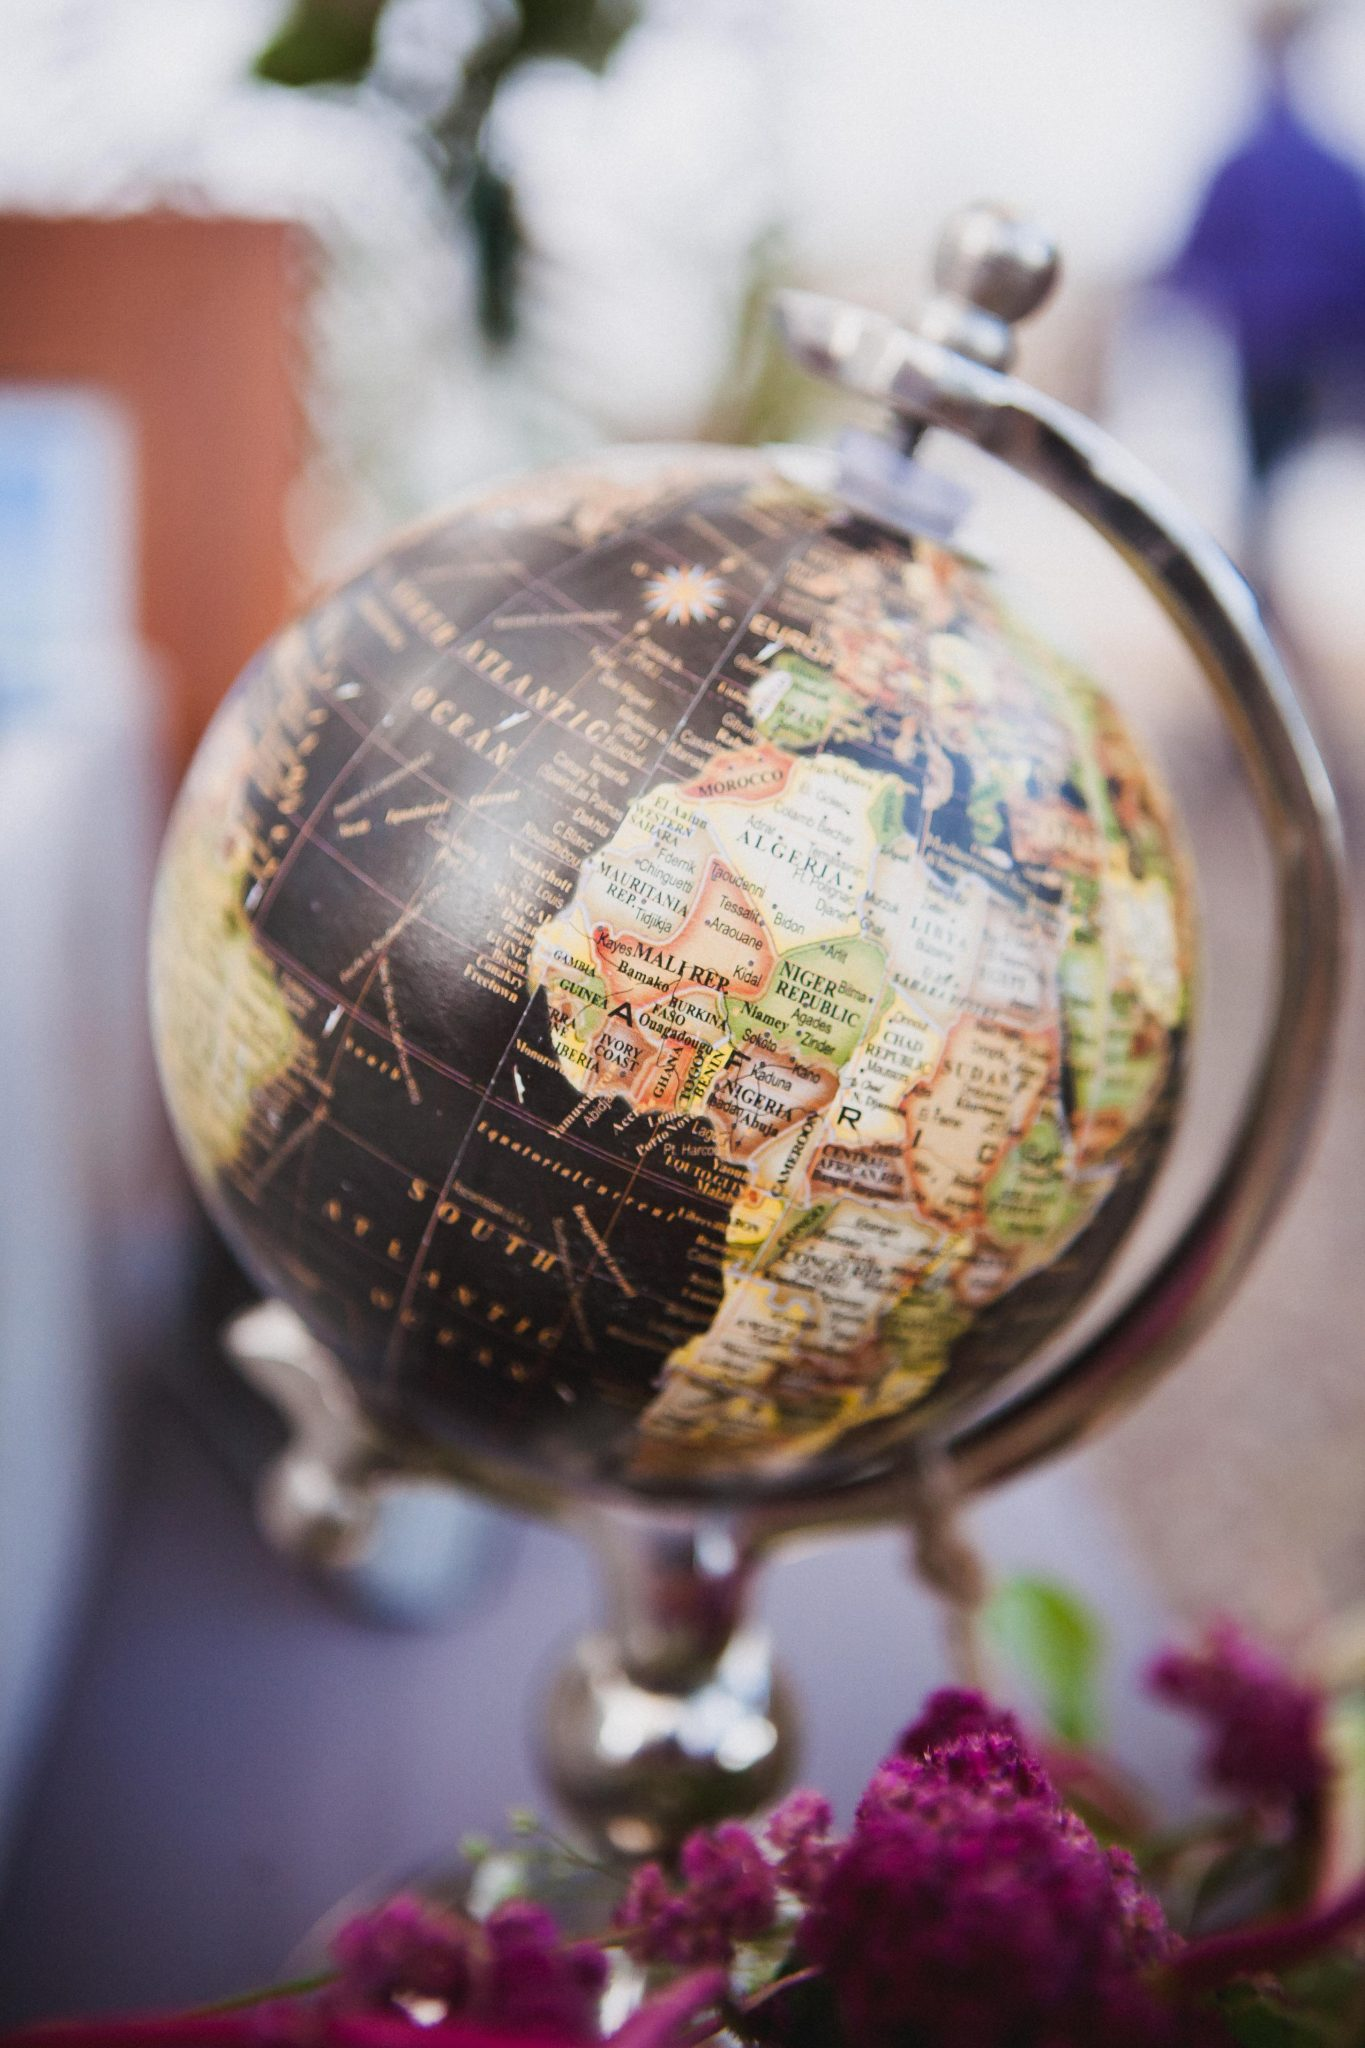 Vintage globe wedding decoration at the reception